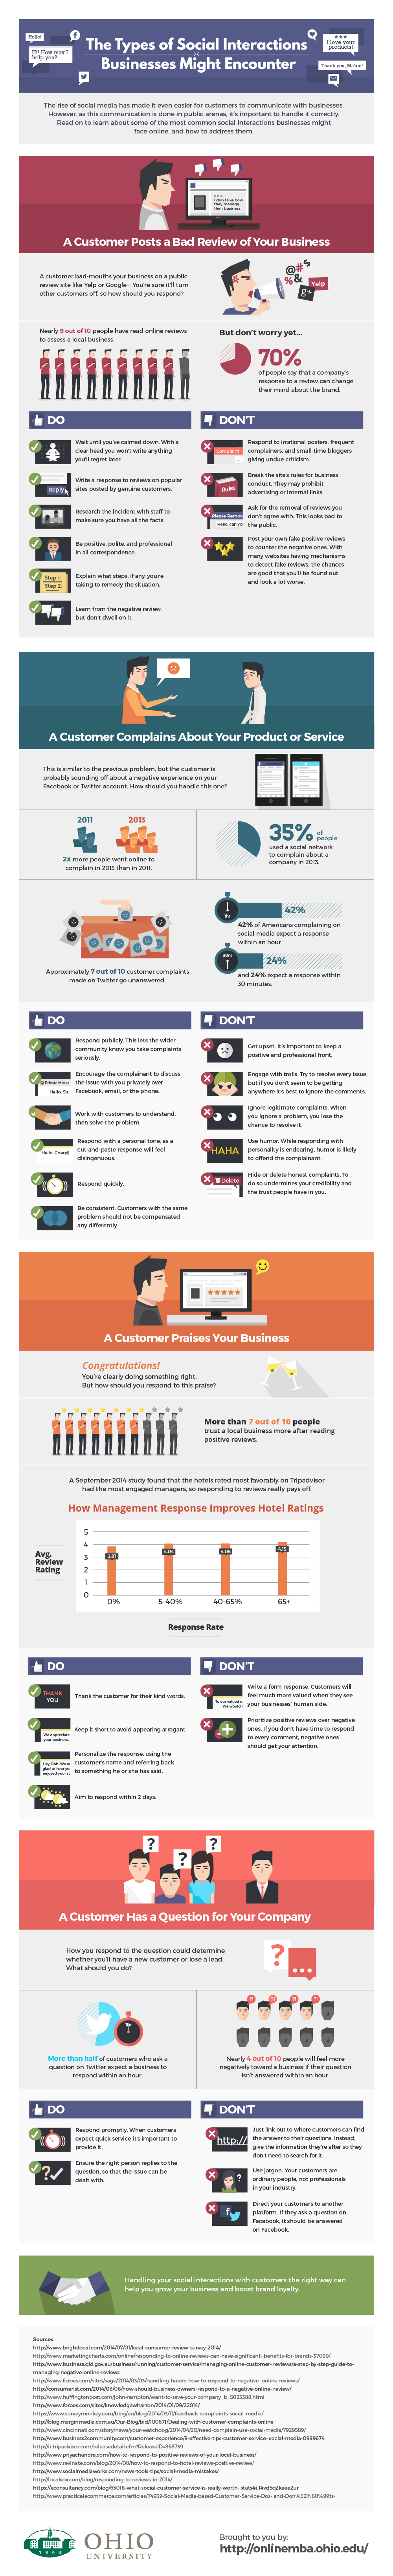 OU_MBA_Business_Social_interactions_Infographic-techblogcorner